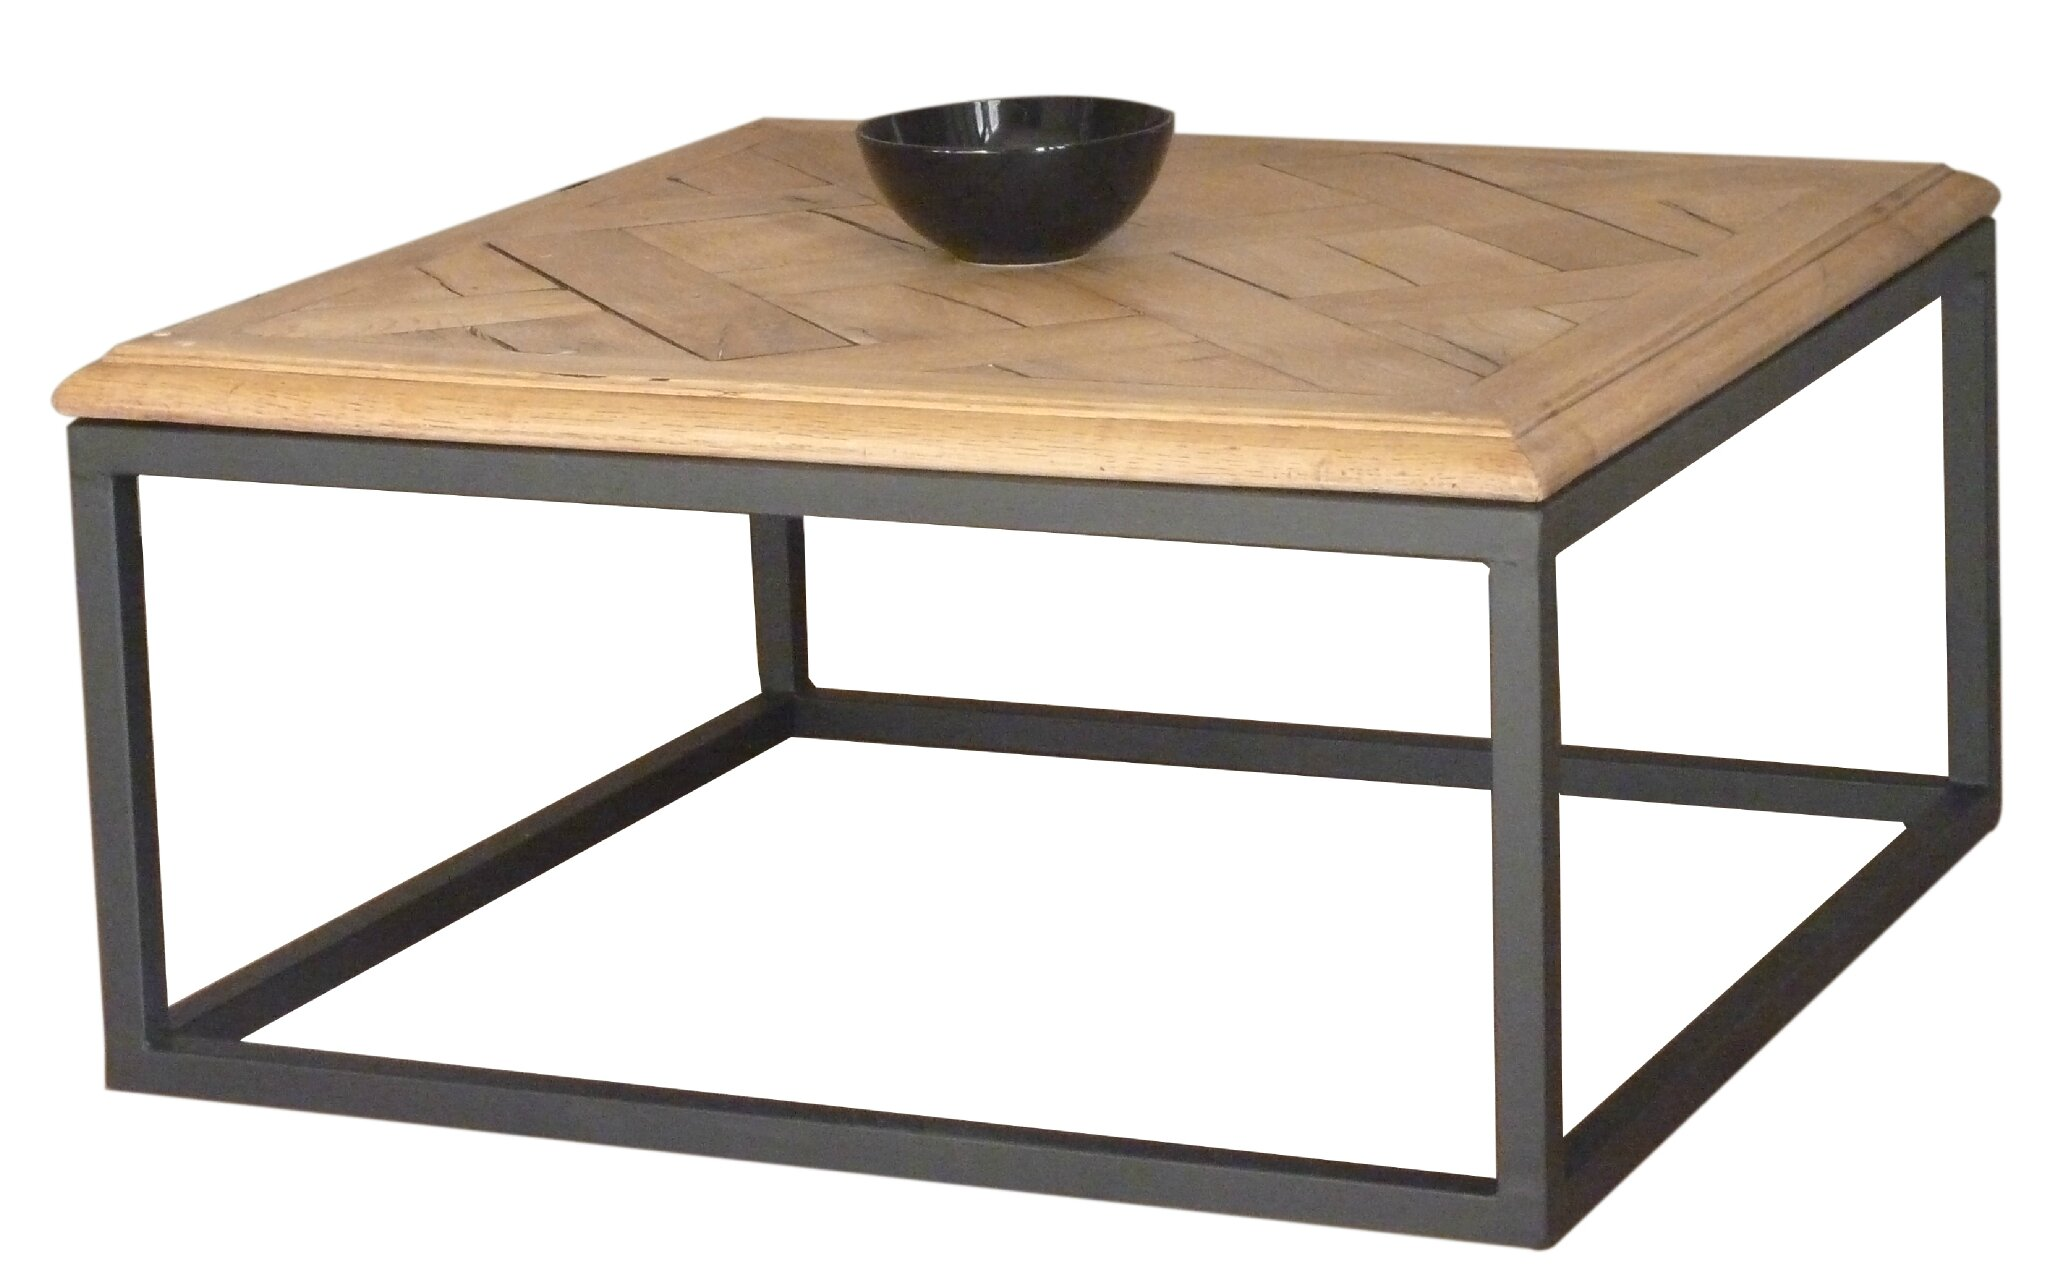 Ma table basse industrielle au 42 home for Table basse industrielle blanche